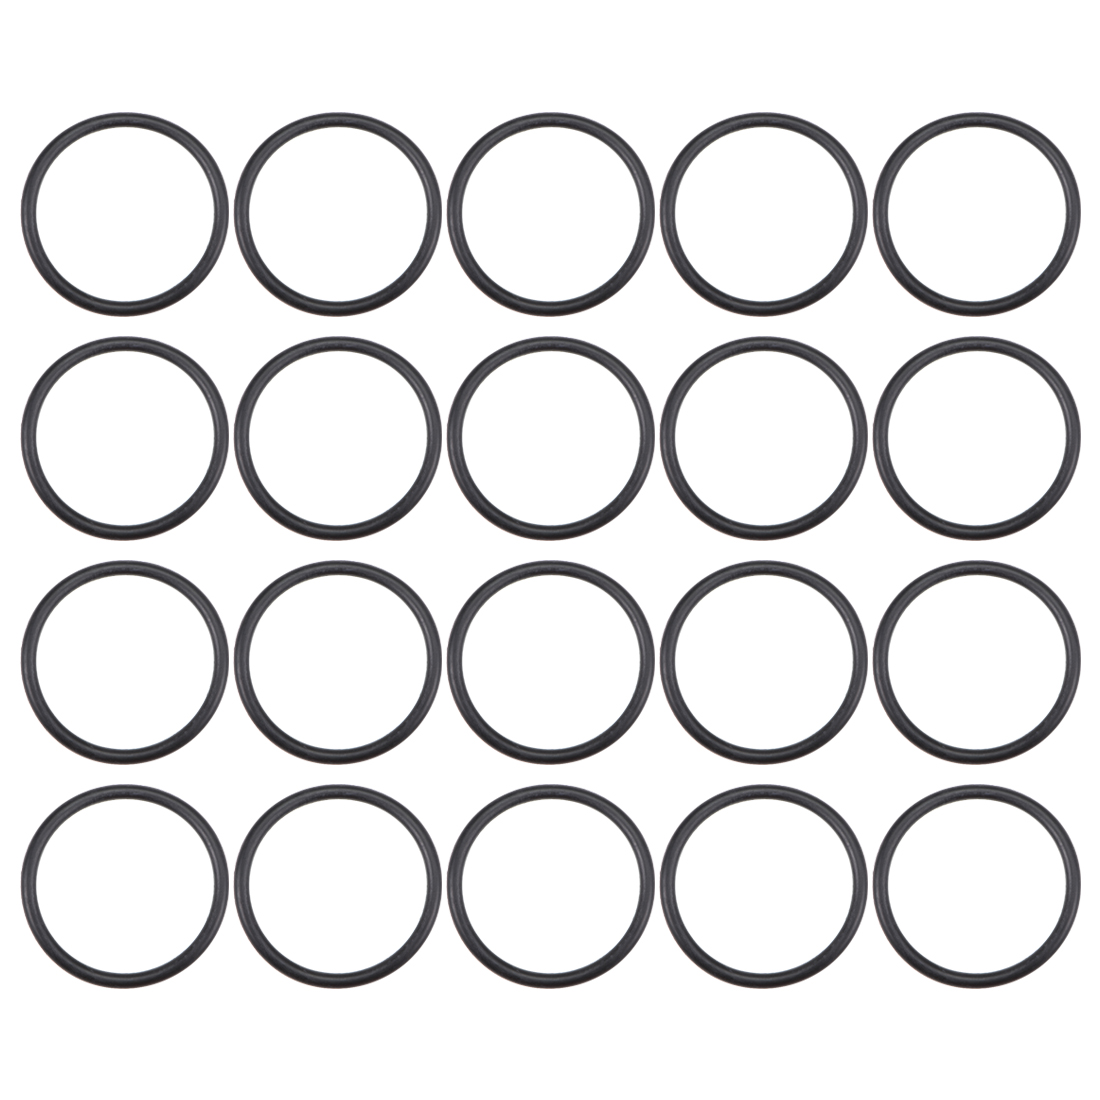 O-Rings Nitrile Rubber 25.8mm x 31.1mm x 2.65mm Round Seal Gasket 20 Pcs